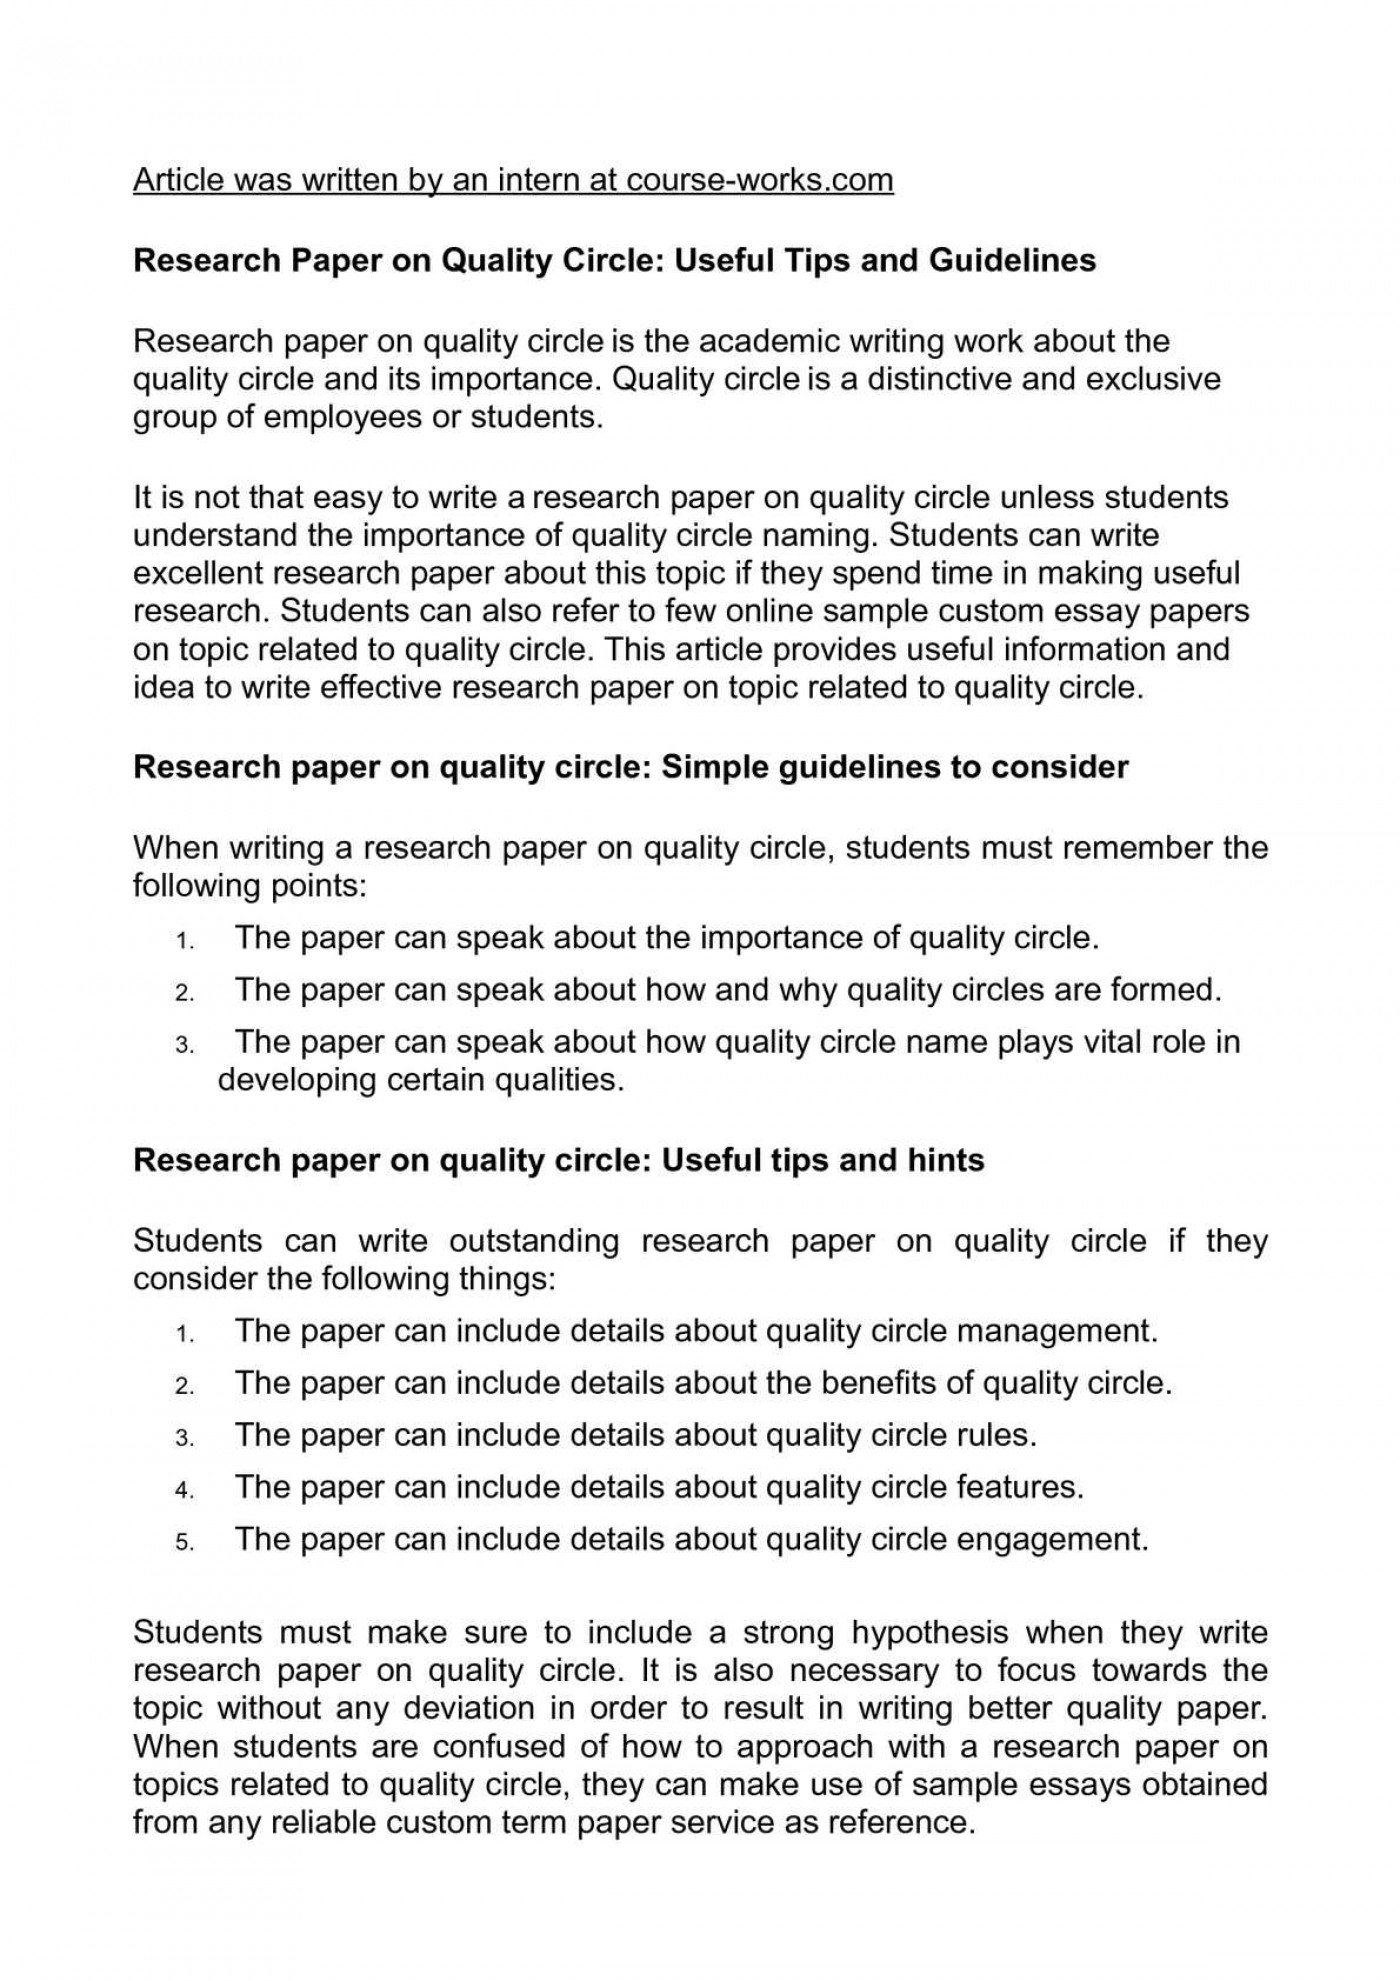 008 P1 Research Paper Wonderful Written Buy Pre Papers For Sale Free 1400